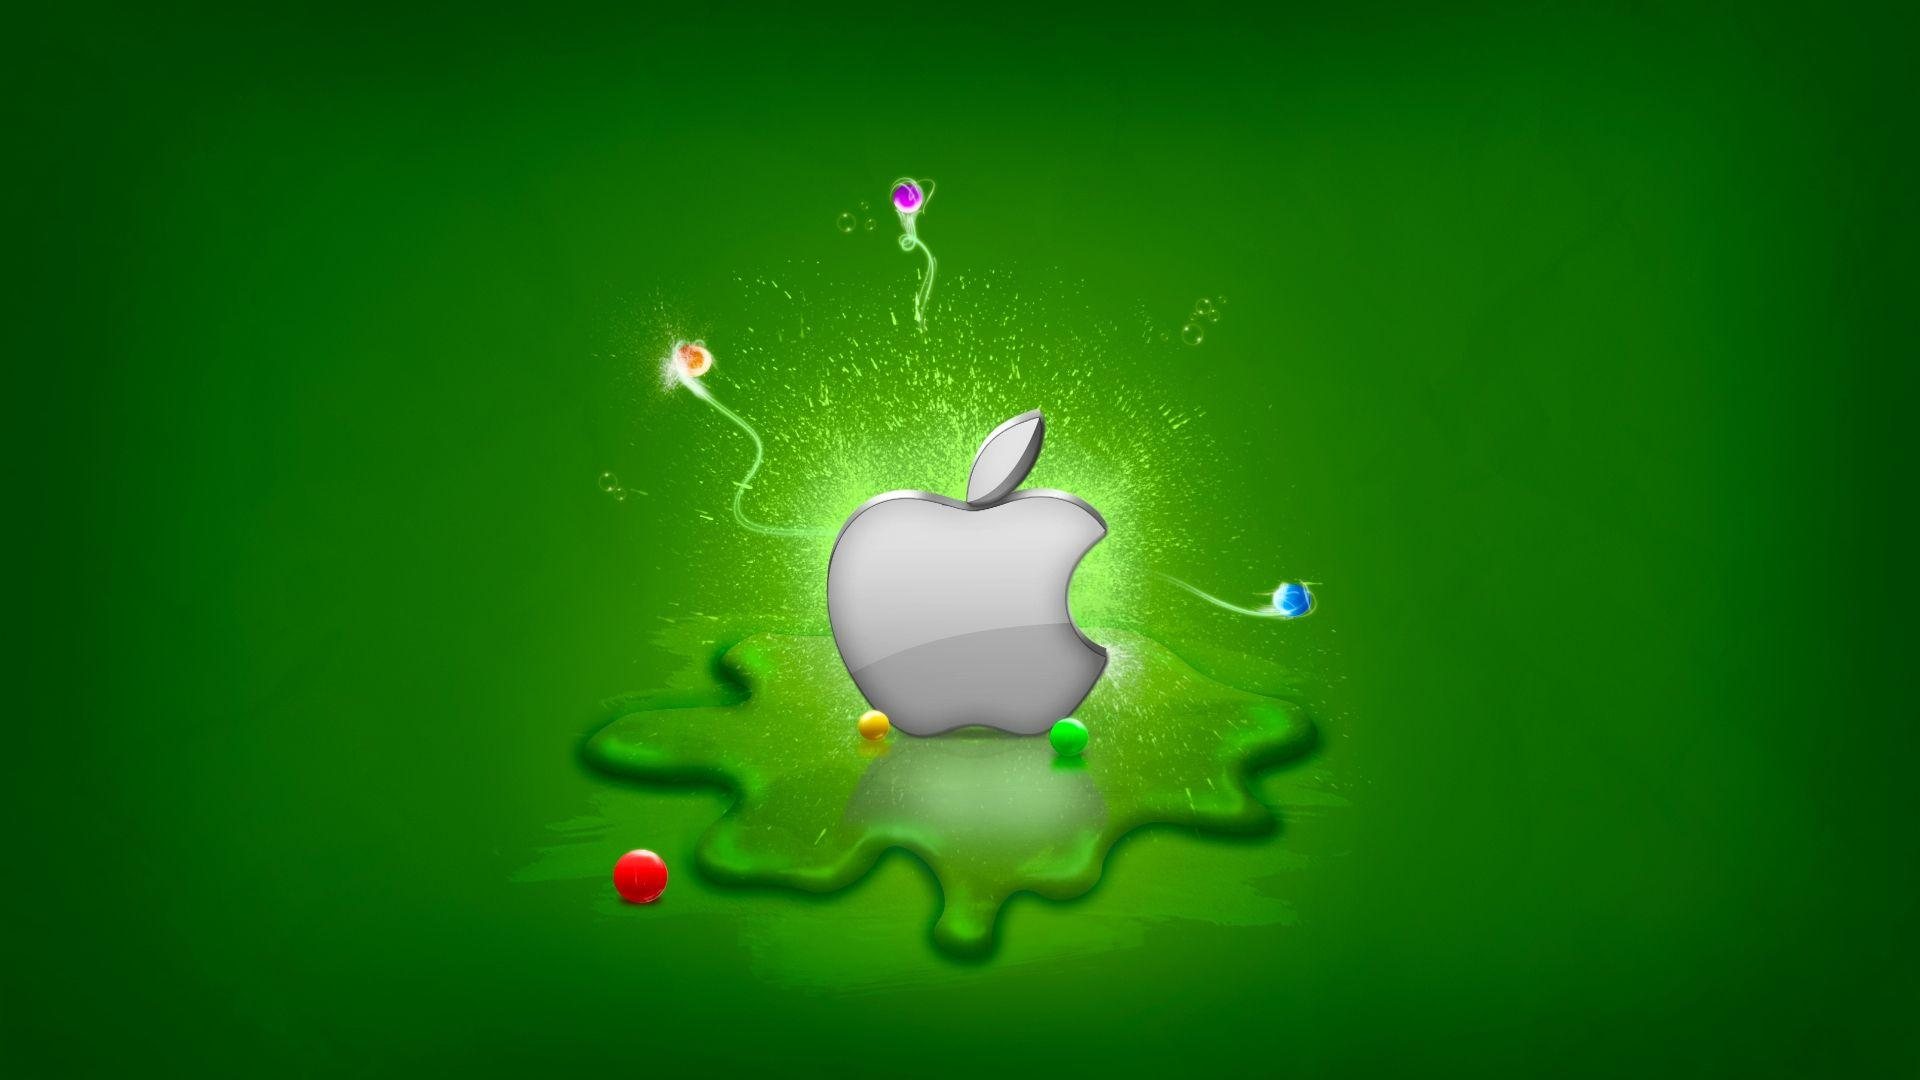 apple iphone wallpaper apple logo hd wallpapers wallpaper cave 4264